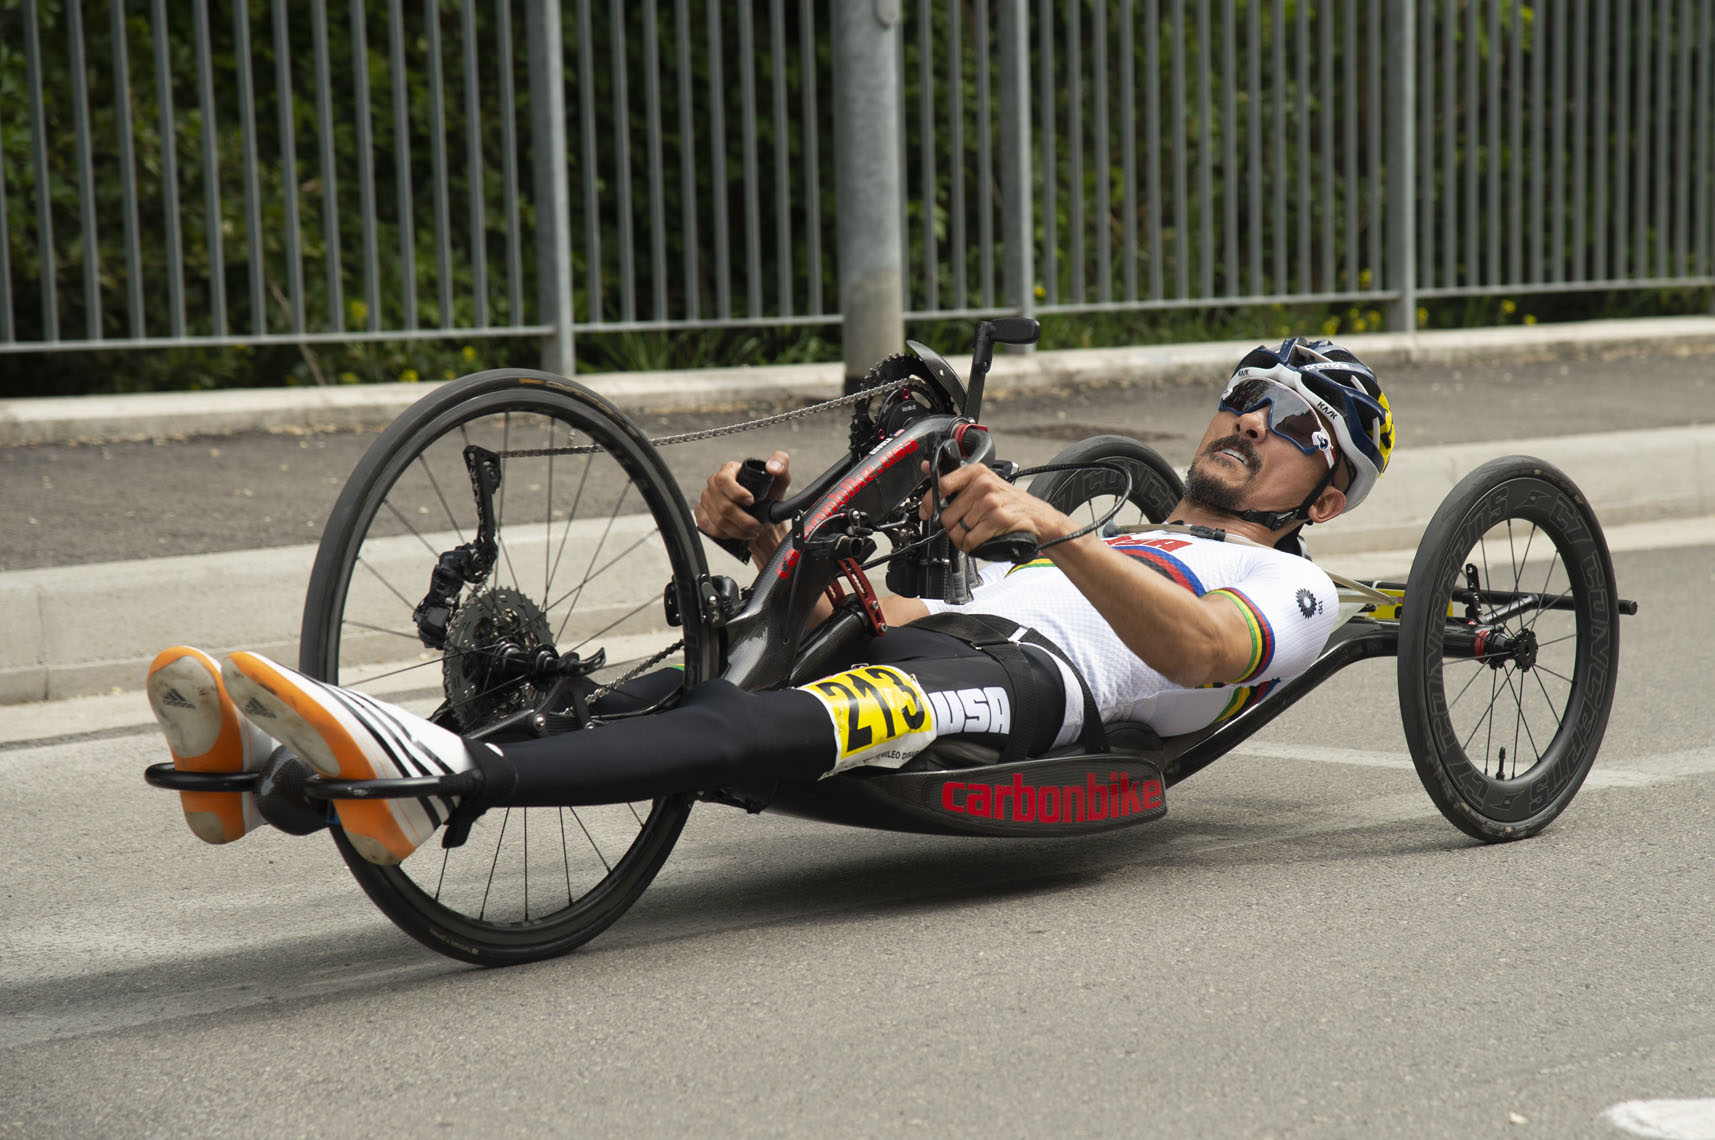 Groulx, UCI Paracycling World Cup, Corridonia, Italy